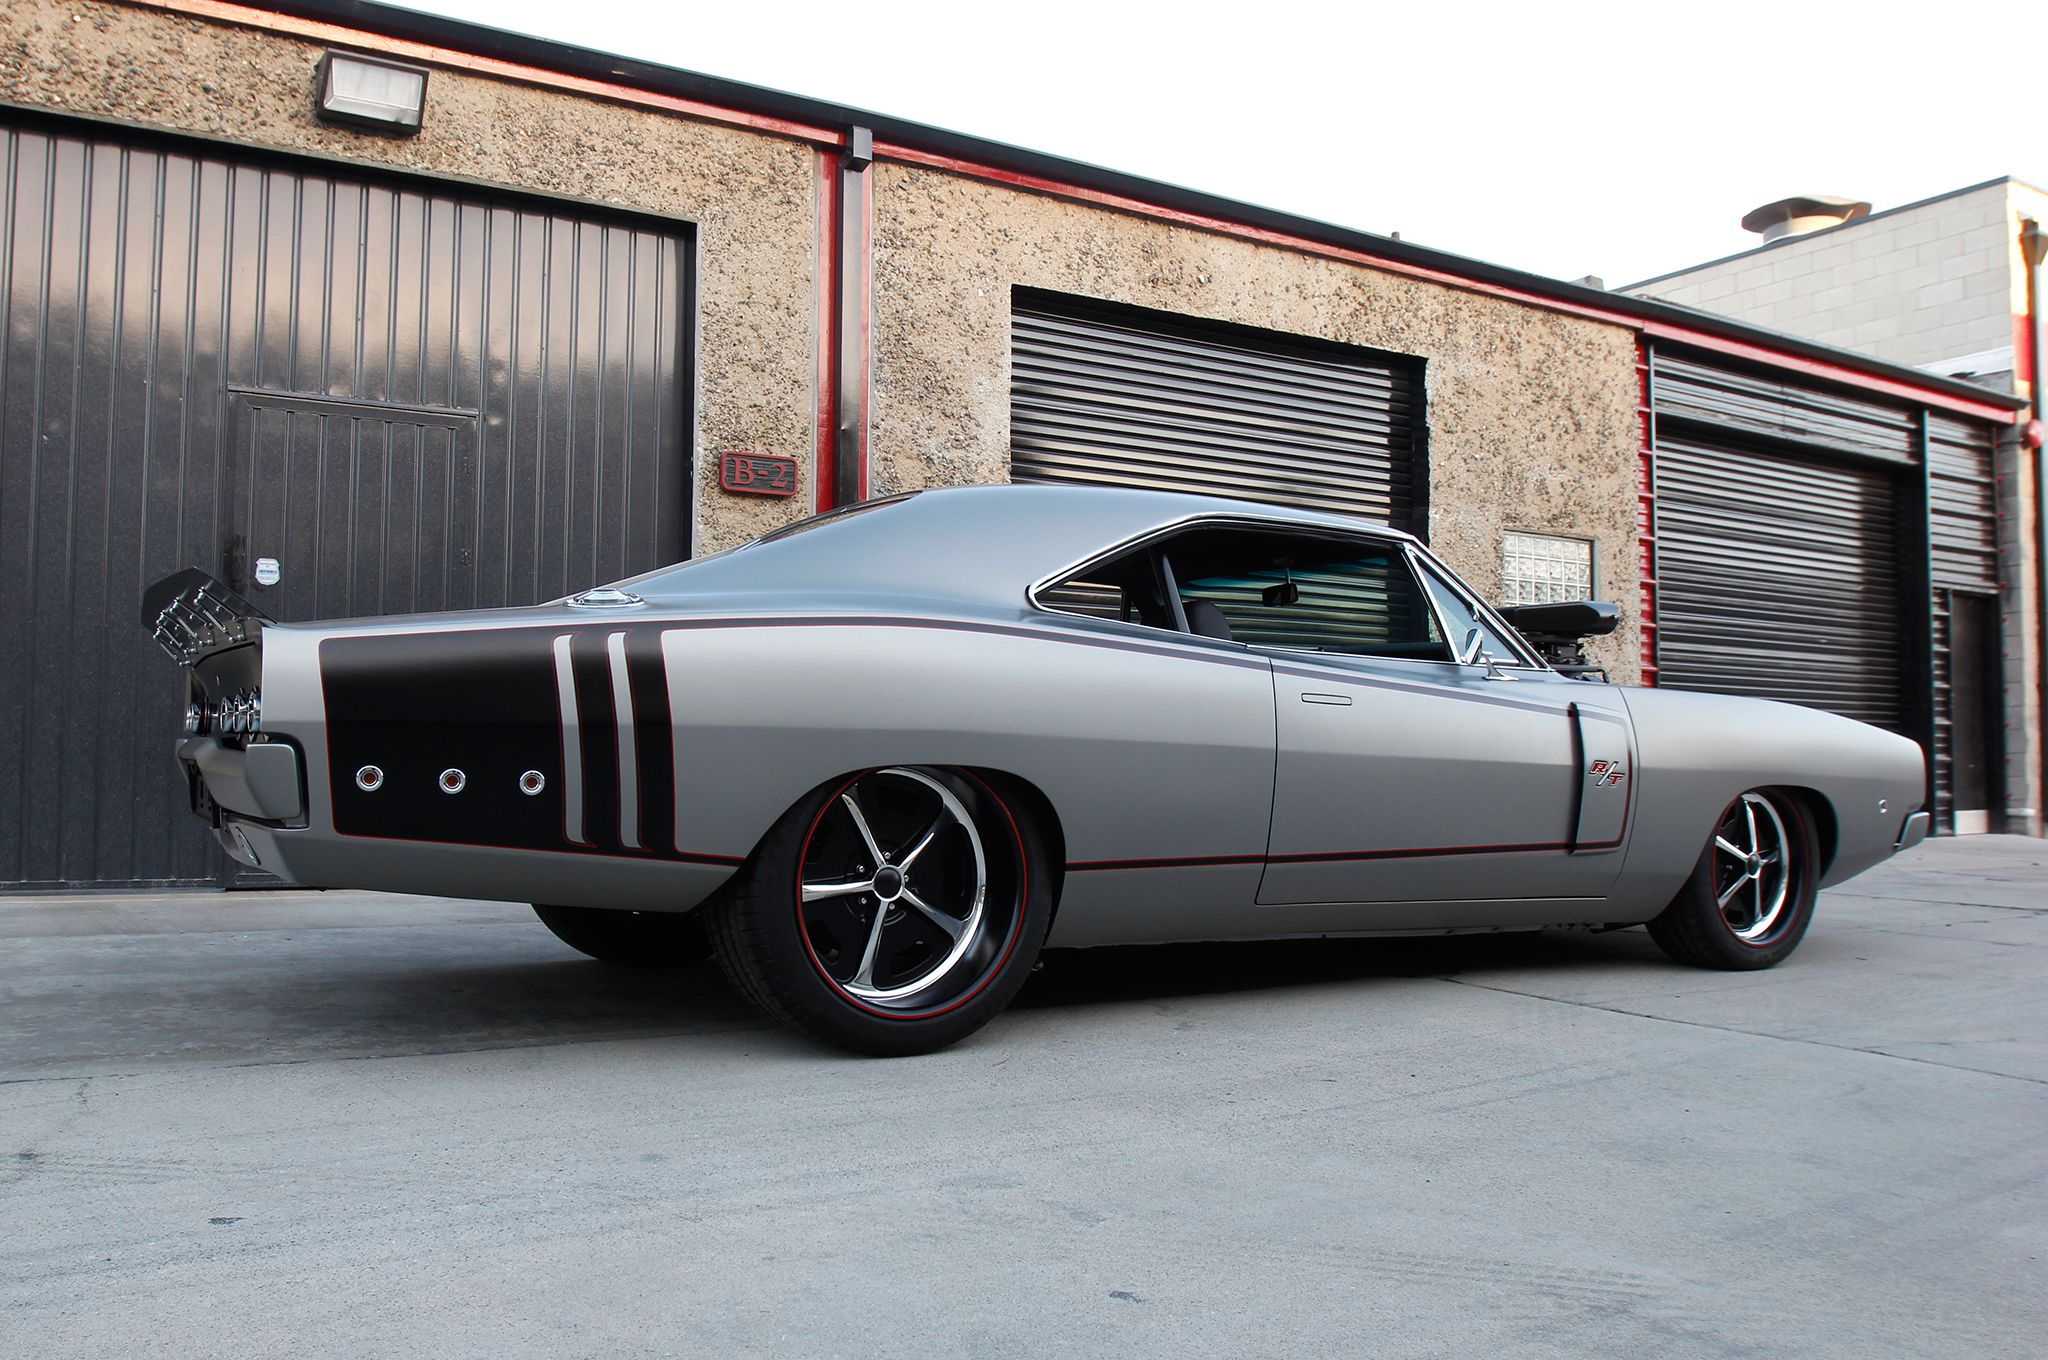 1970 dodge charger rear view side